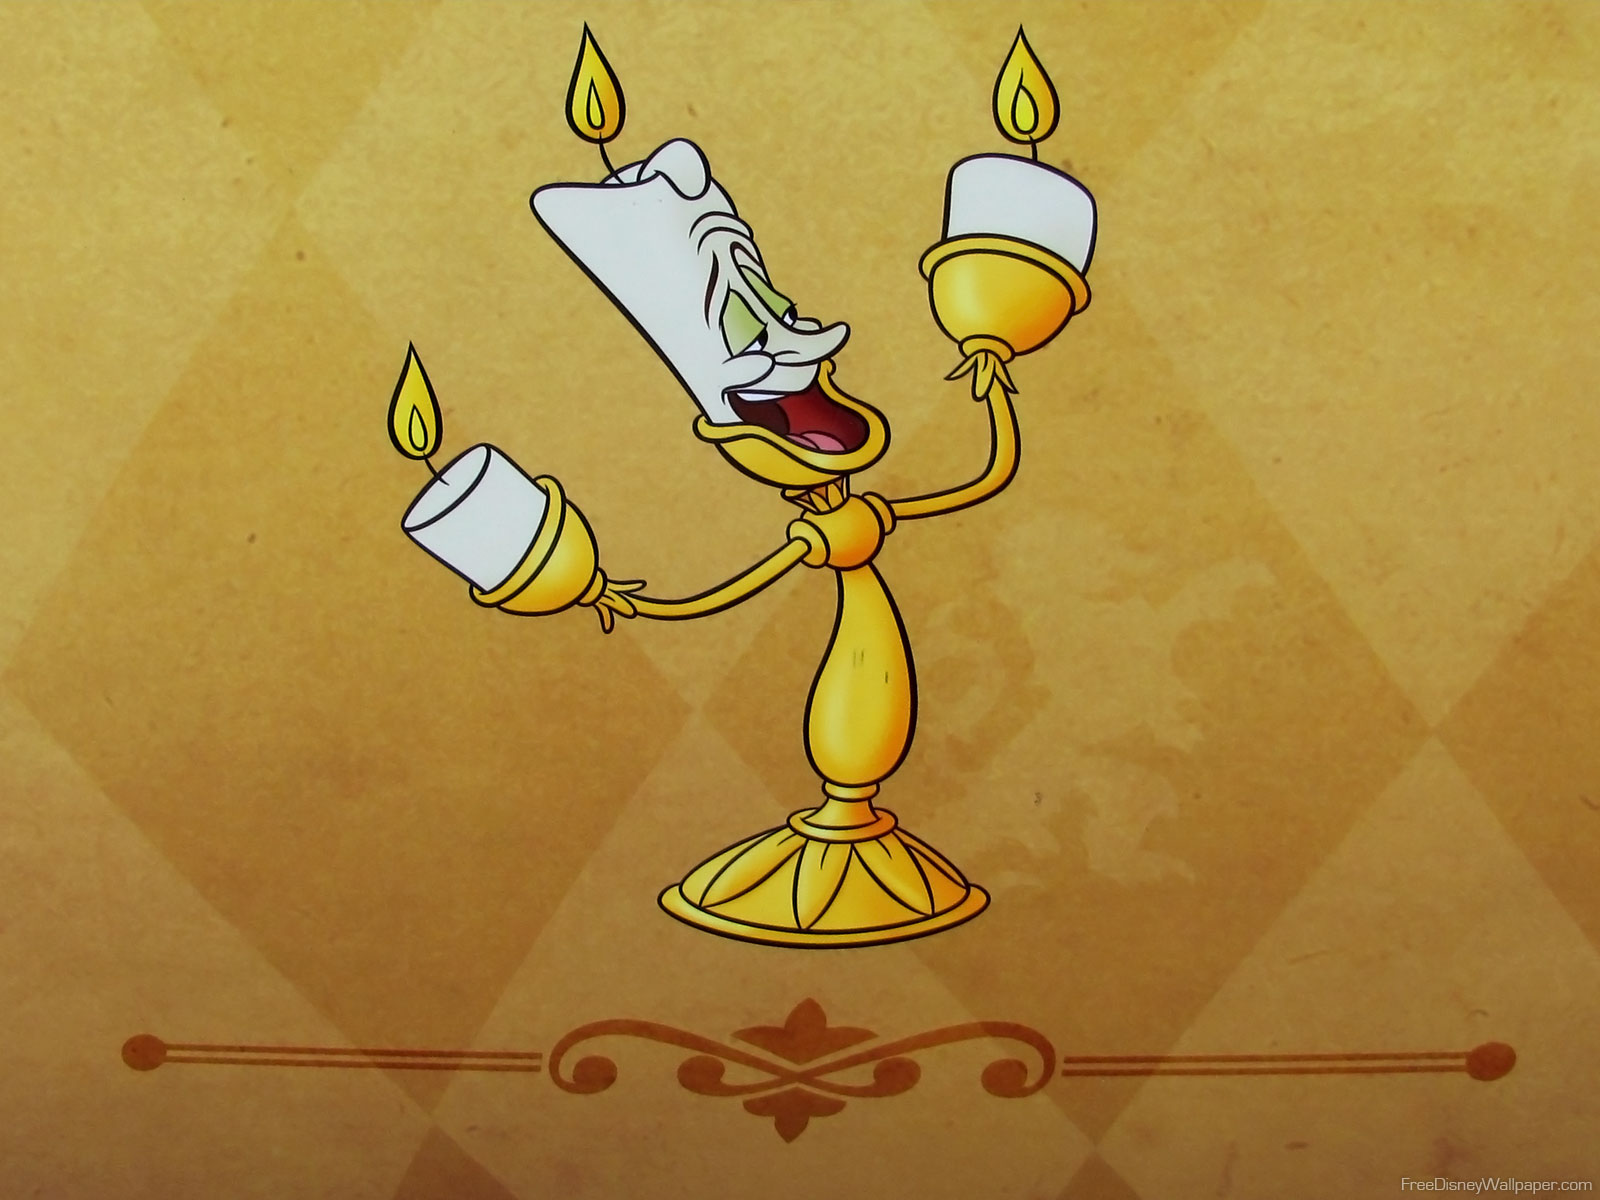 Beauty and the Beast wallpaper - Lumiere